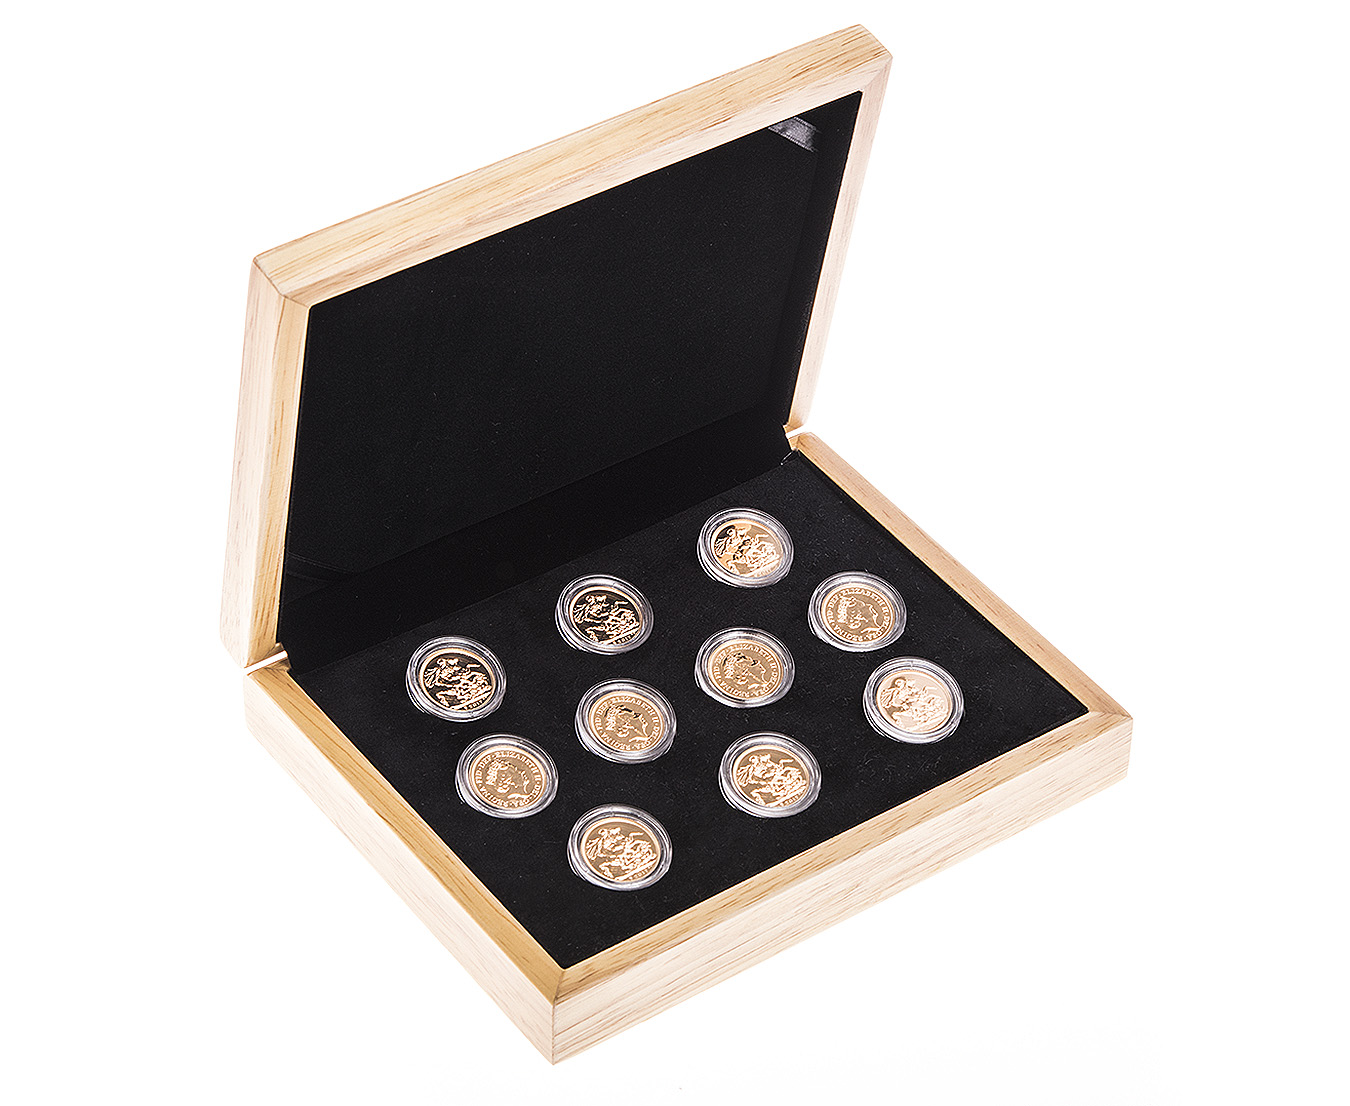 Ten 2017 Sovereign Gold Coin in Gift Box